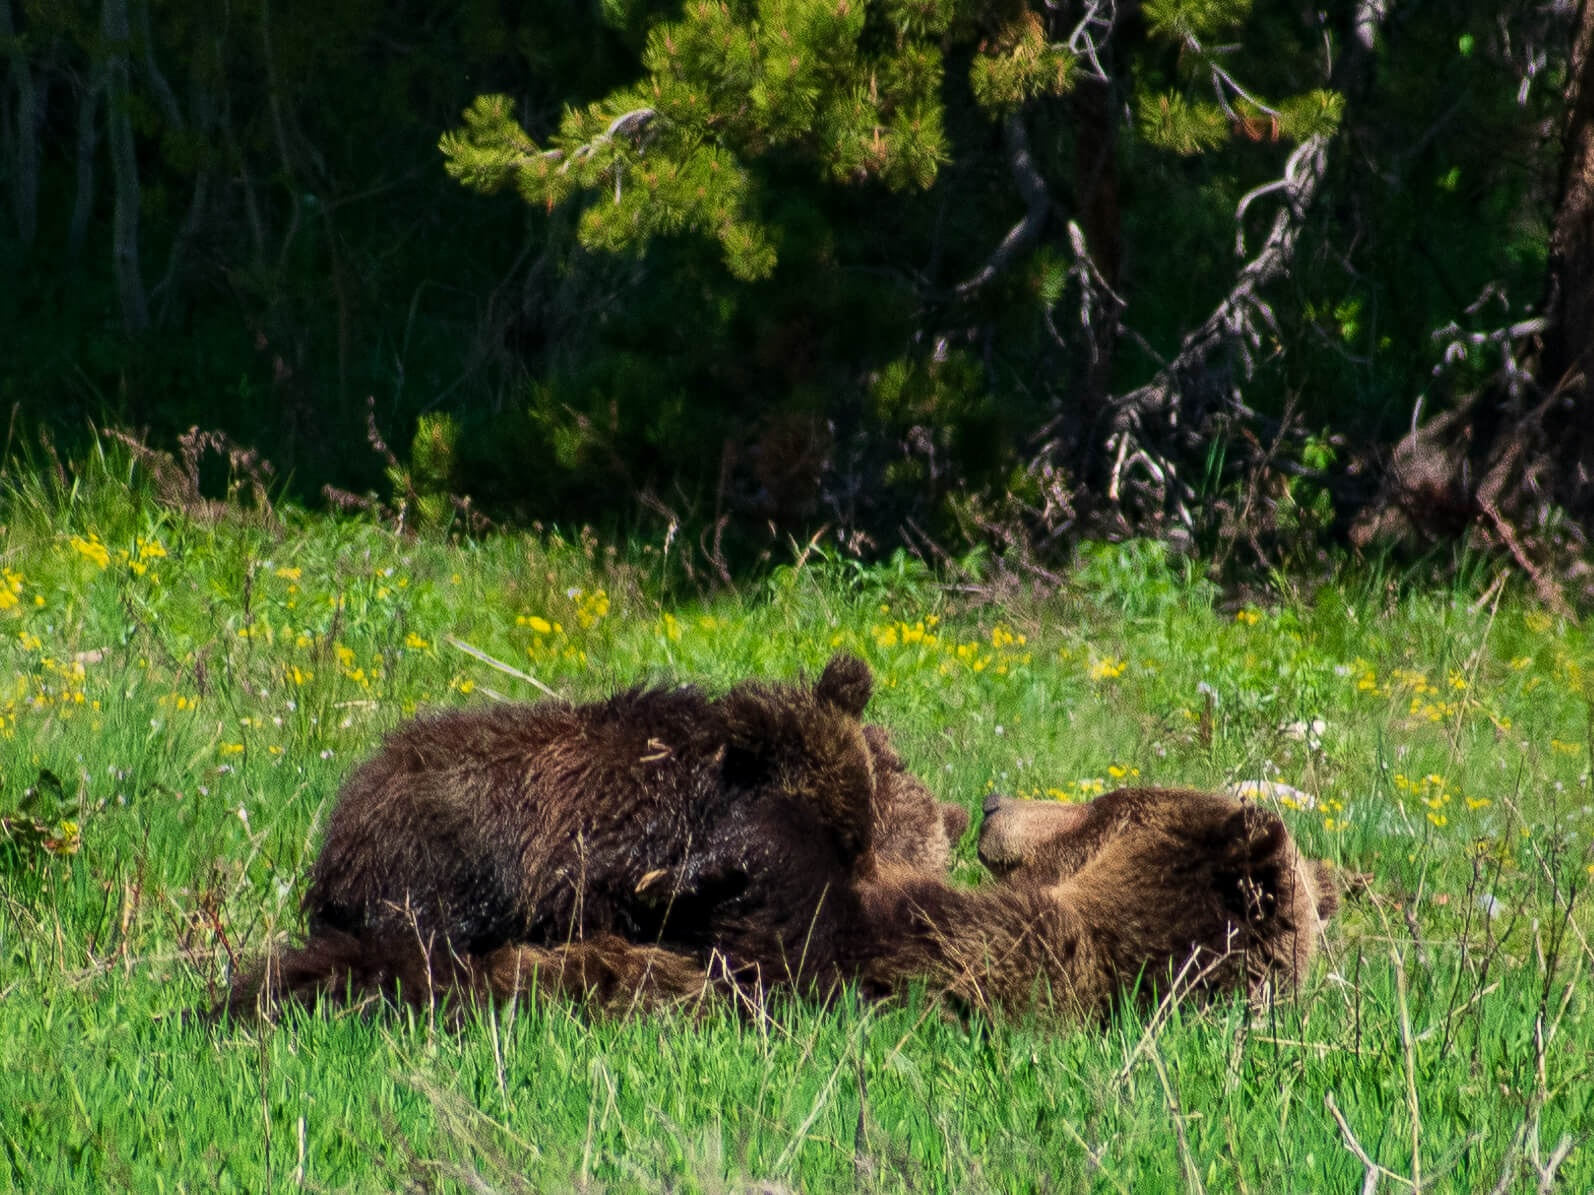 Grizzly bear cubs nursing